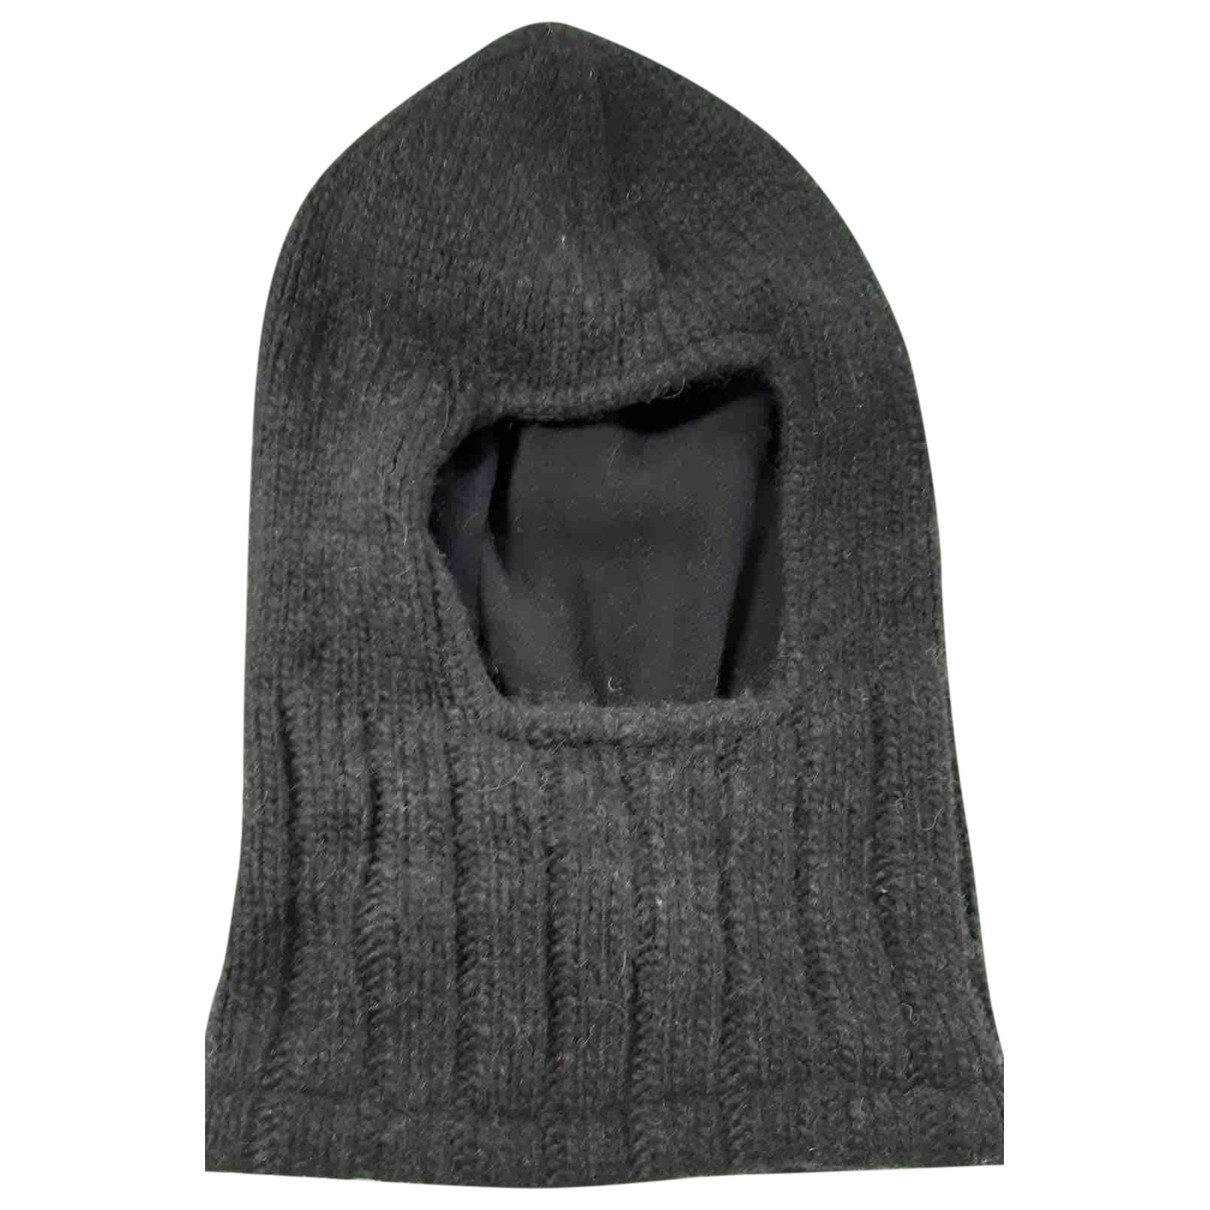 Emporio Armani N Black Wool hat & pull on hat for Men M International